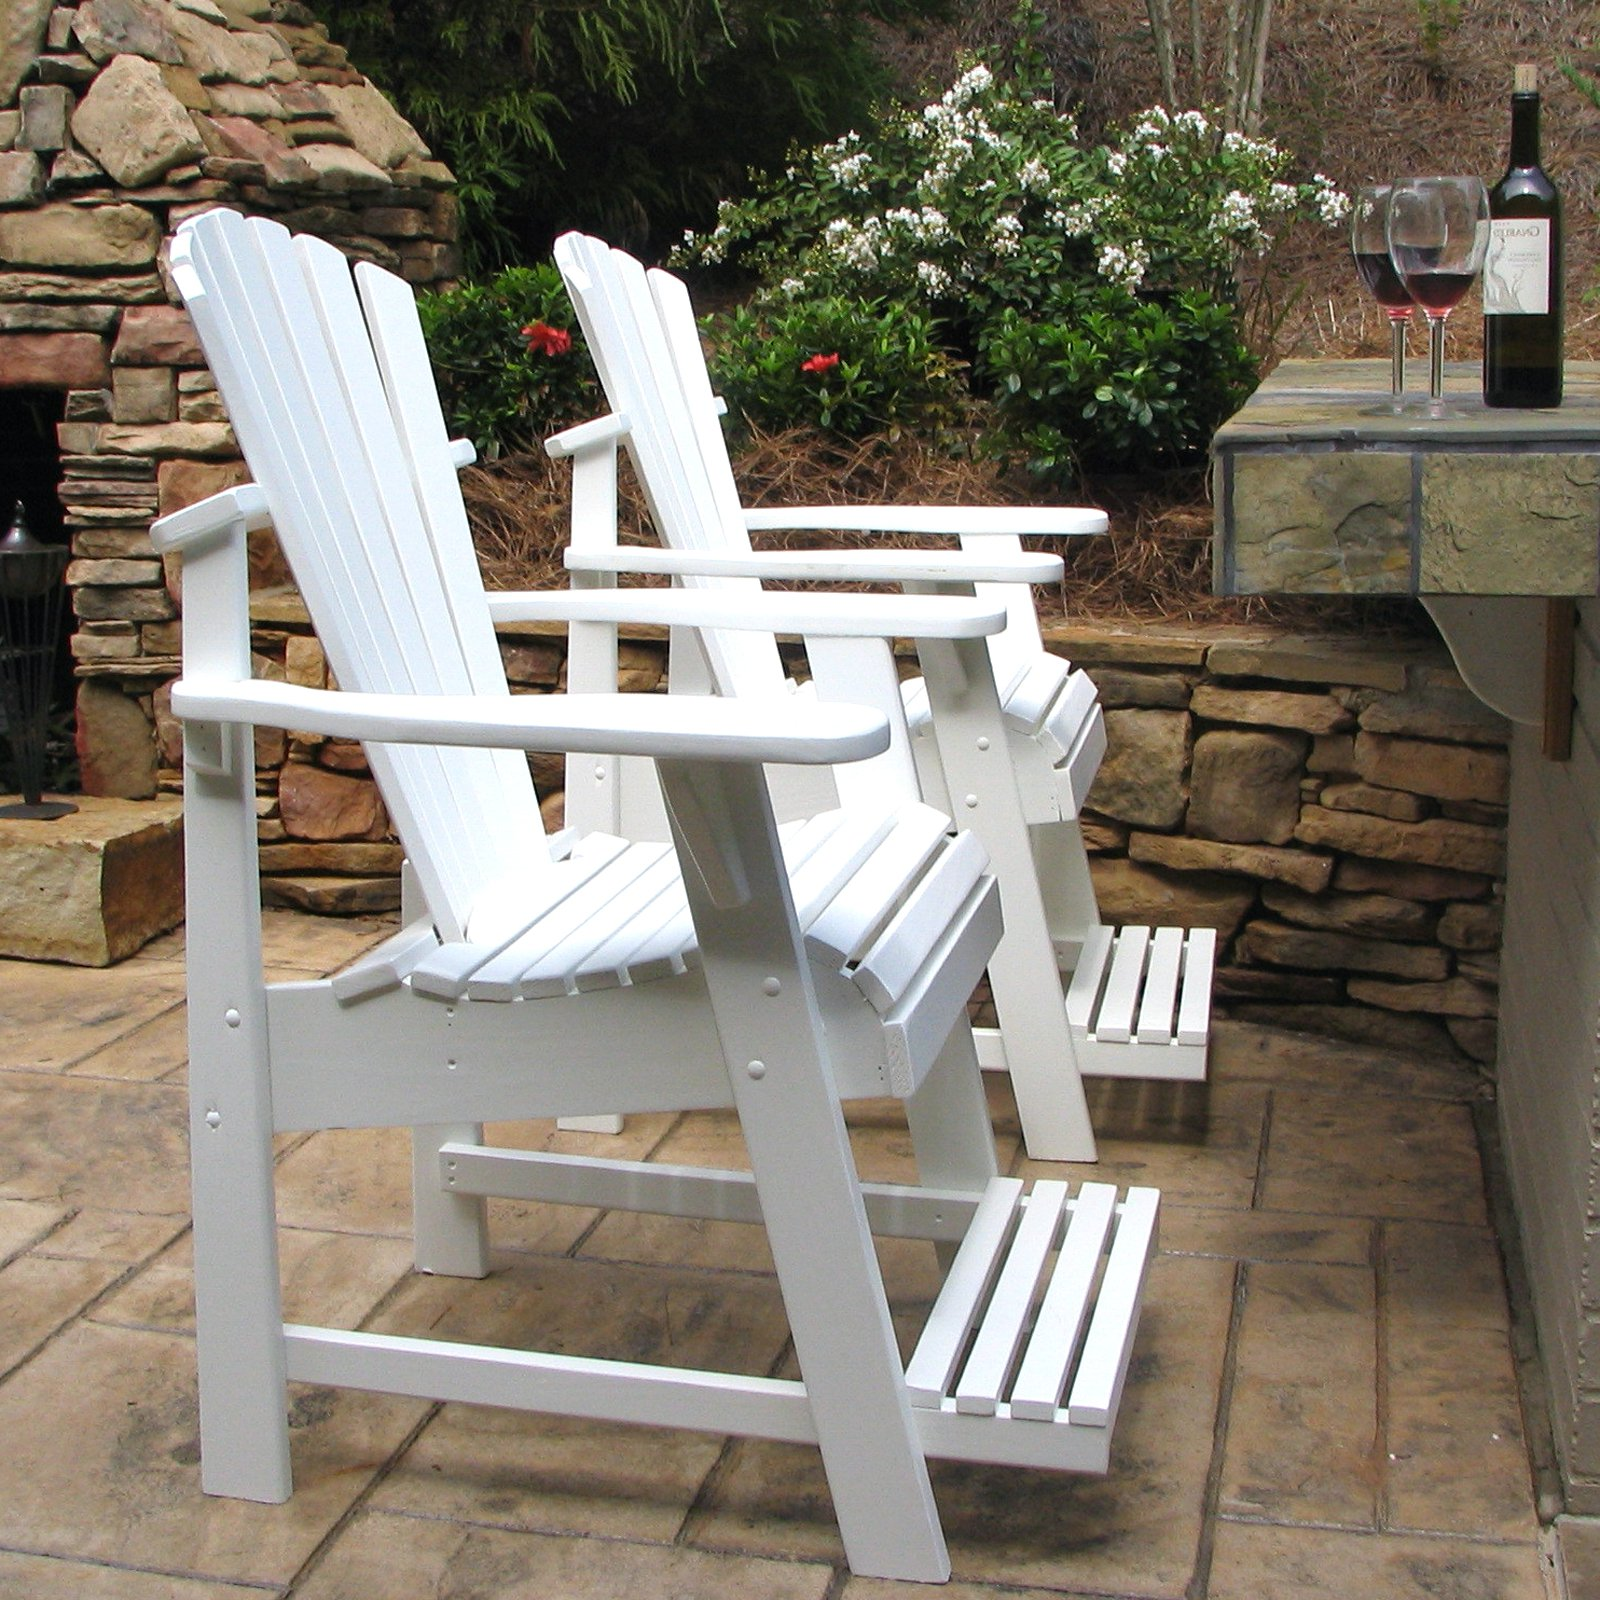 Weathercraft Designers Choice Painted Balcony Adirondack Chair with Footrest